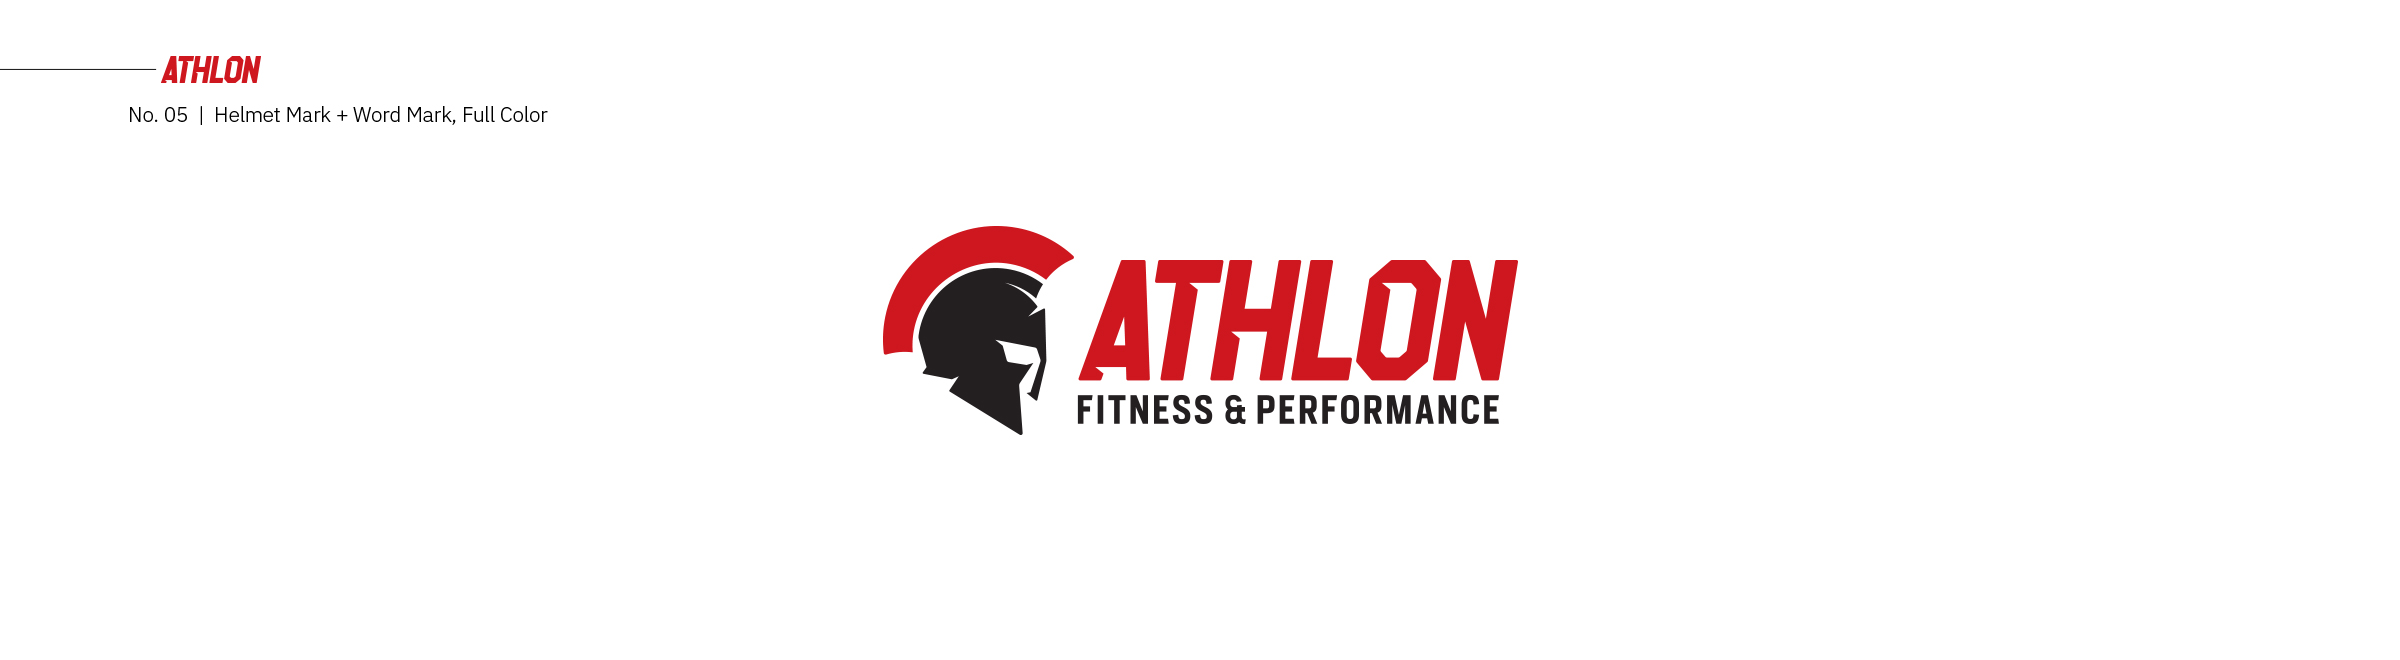 Athlon-Brand-Refresh-05-Logo-Full-Color